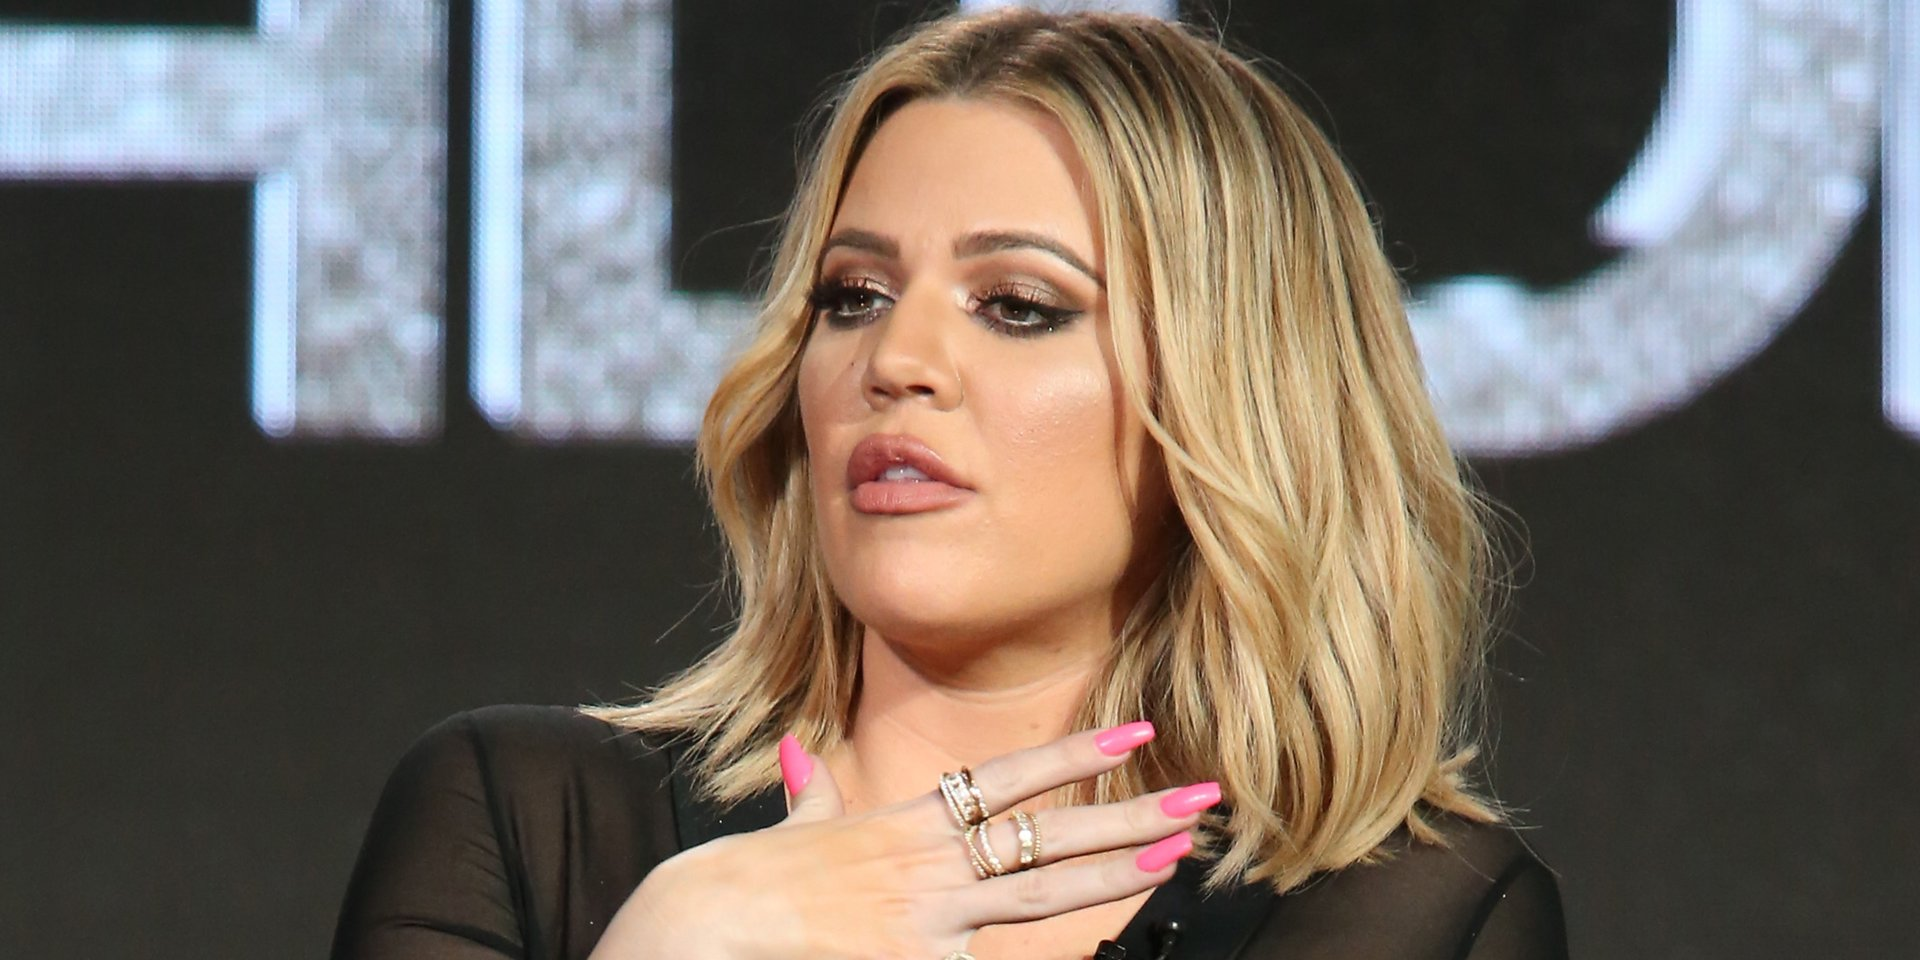 khloe-kardashian-is-reportedly-devastated-that-tristan-thompson-did-not-fight-for-her